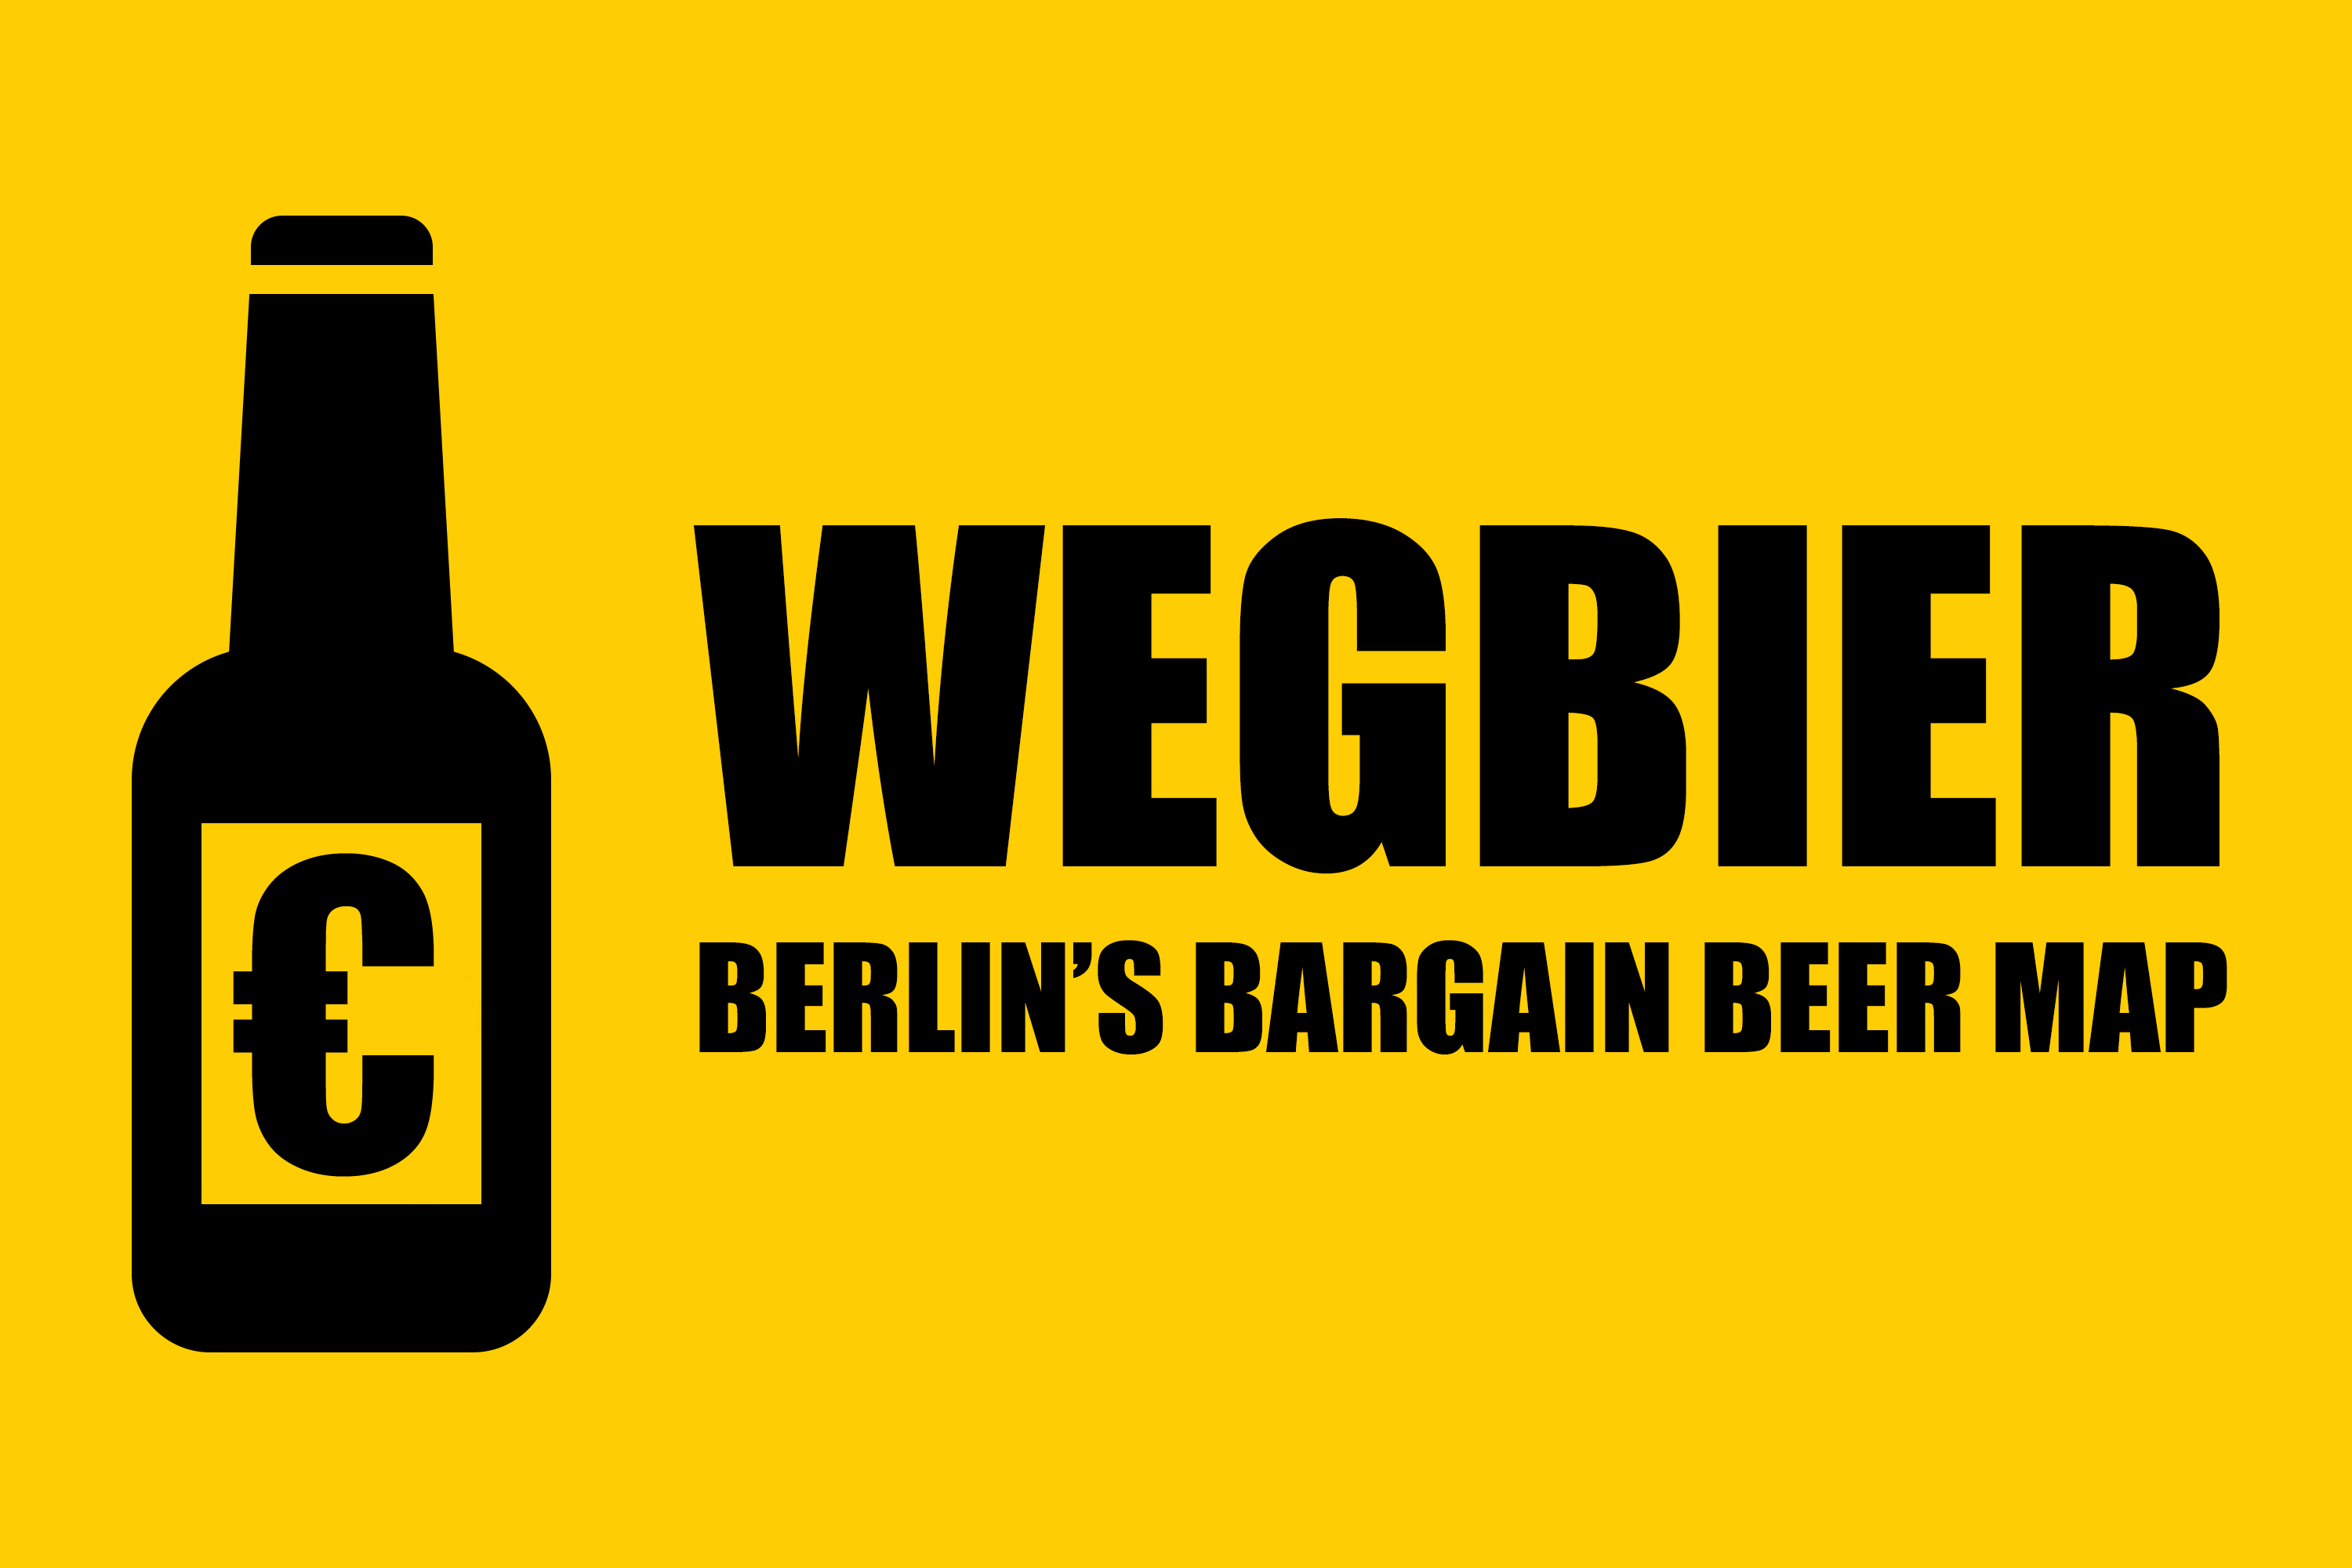 Wegbier: Berlin's Bargain Beer Map Logo - Where to get a cold half-litre bottle of Berliner Kindl Jubiläums Pilsener for 1€ or less in the German capital.